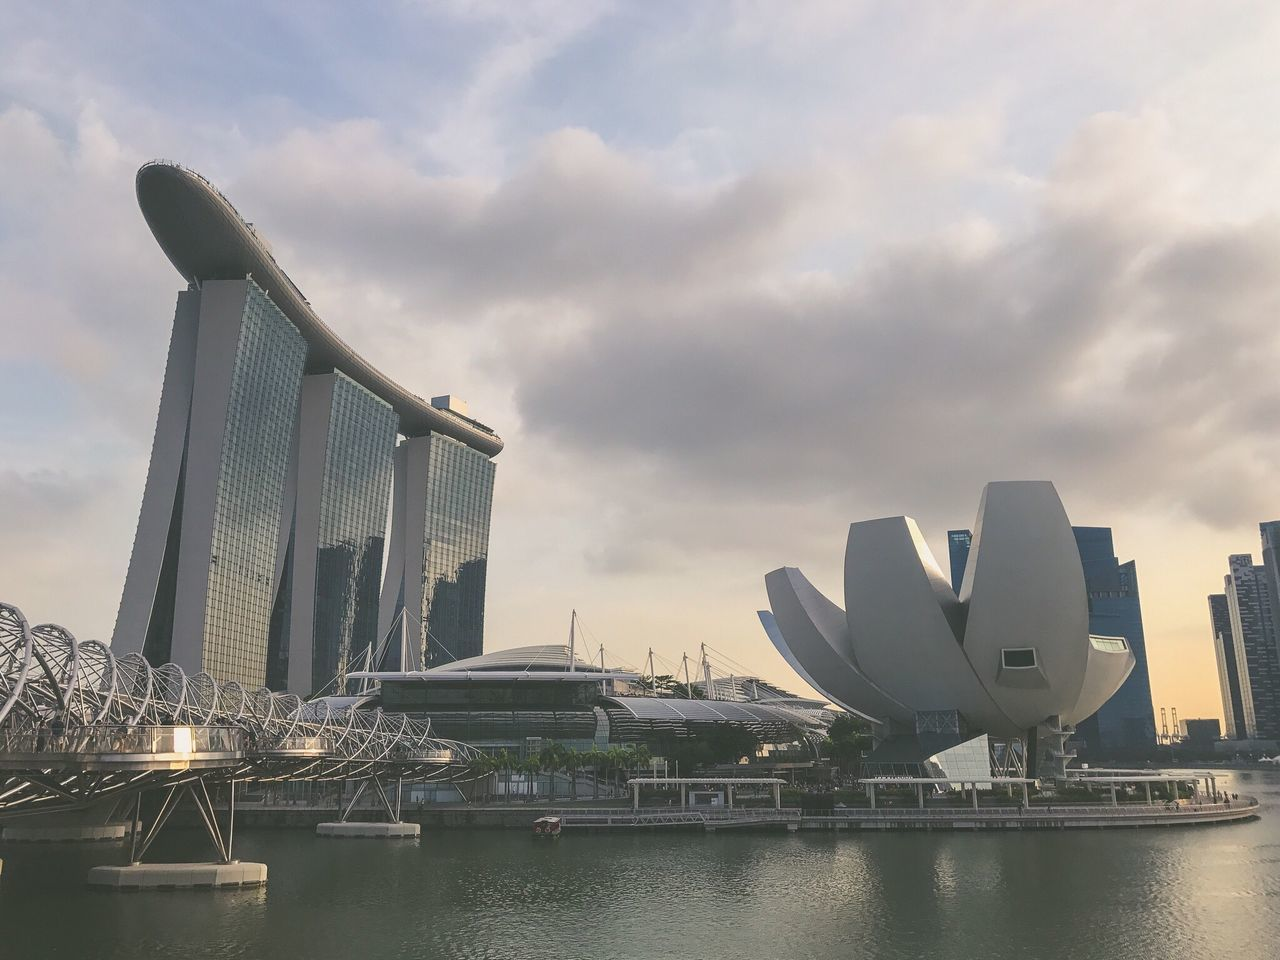 Architecture City Building Exterior Built Structure Travel Destinations Modern Travel Skyscraper Cityscape Waterfront Outdoors Sky No People River Water Urban Skyline Cloud - Sky Bridge - Man Made Structure Day